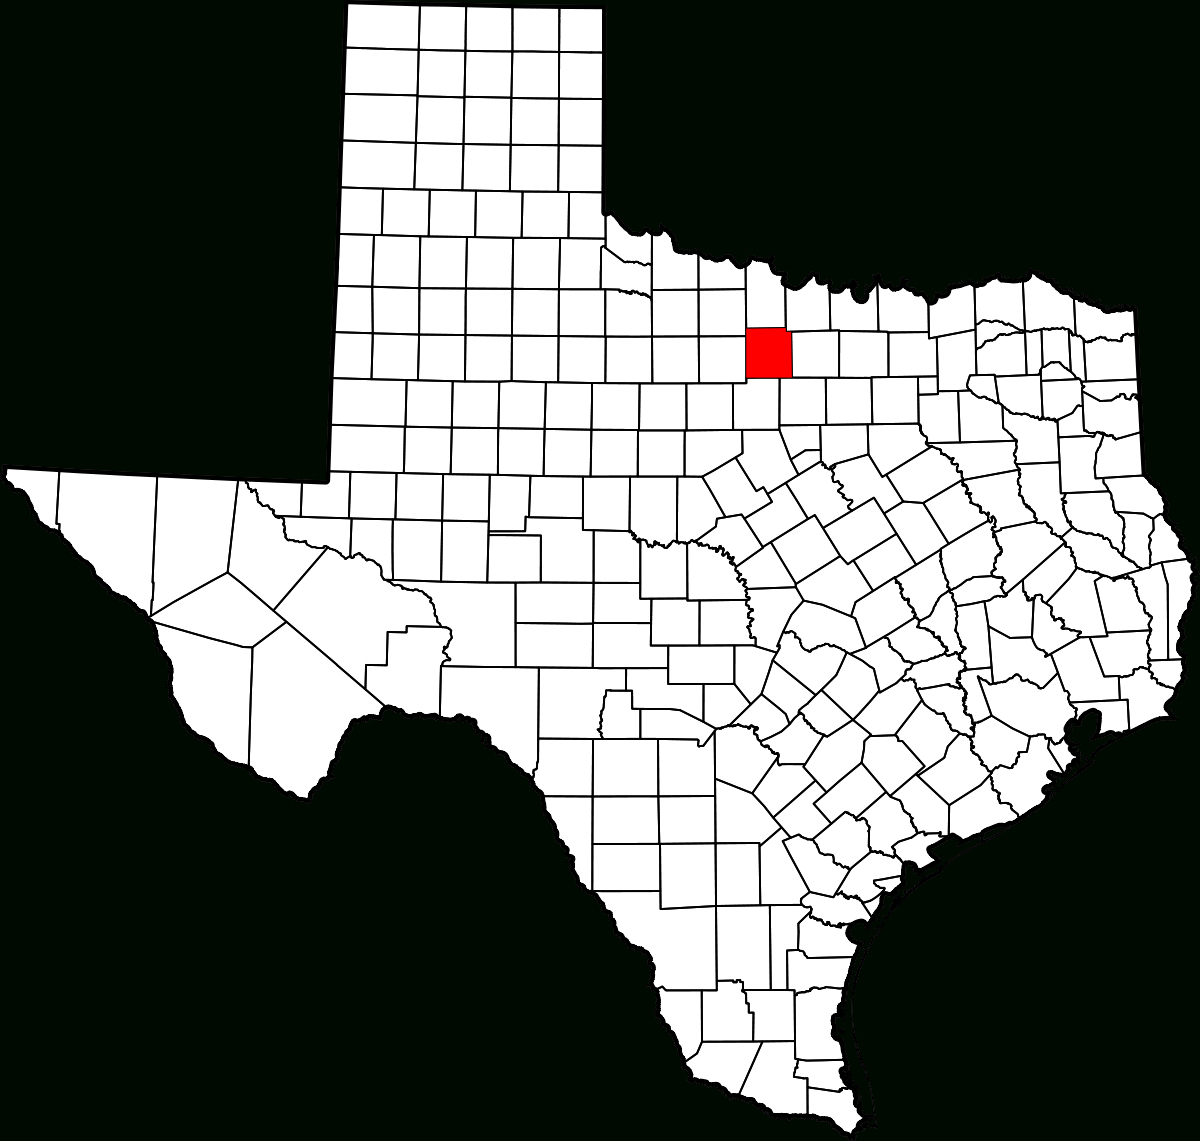 National Register Of Historic Places Listings In Jack County, Texas - Jack County Texas Map